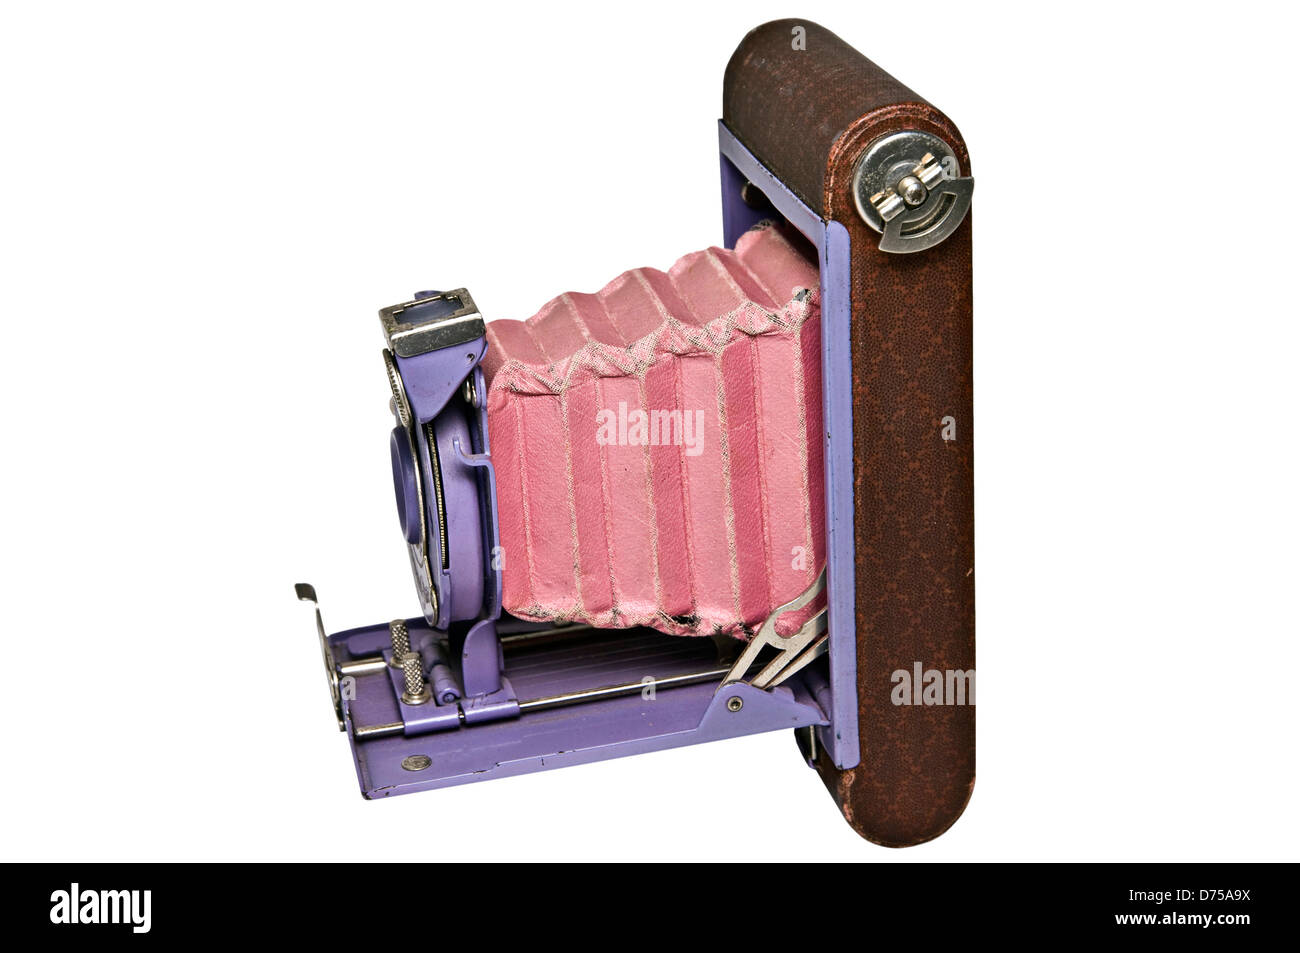 Side view of an antique pocket camera, purple with pink bellows. - Stock Image